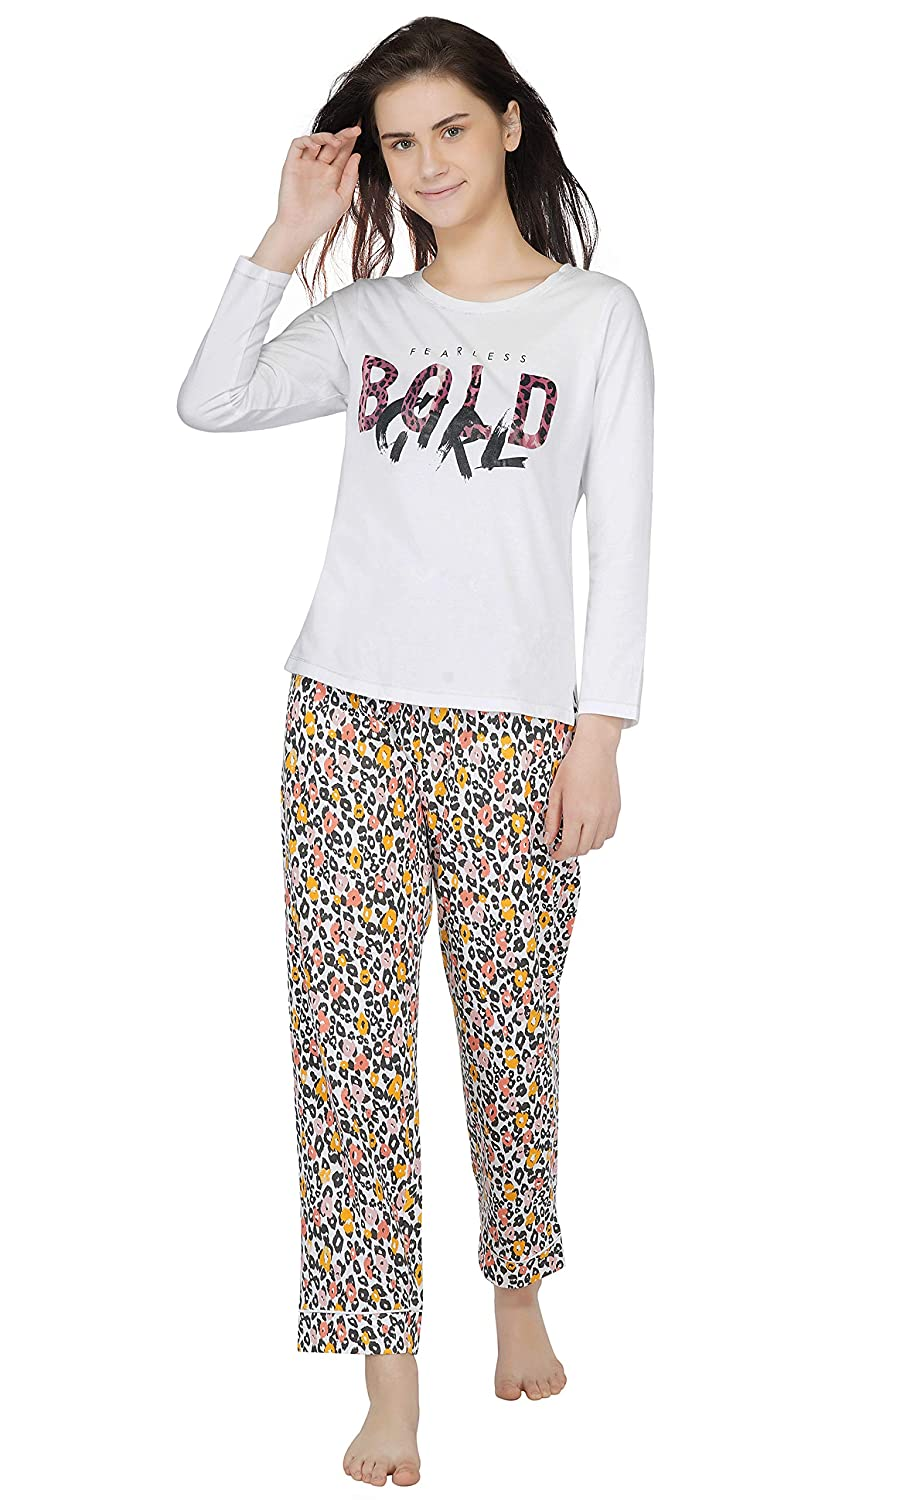 Women's Cotton Animal/Butterfly Print Pajama Set